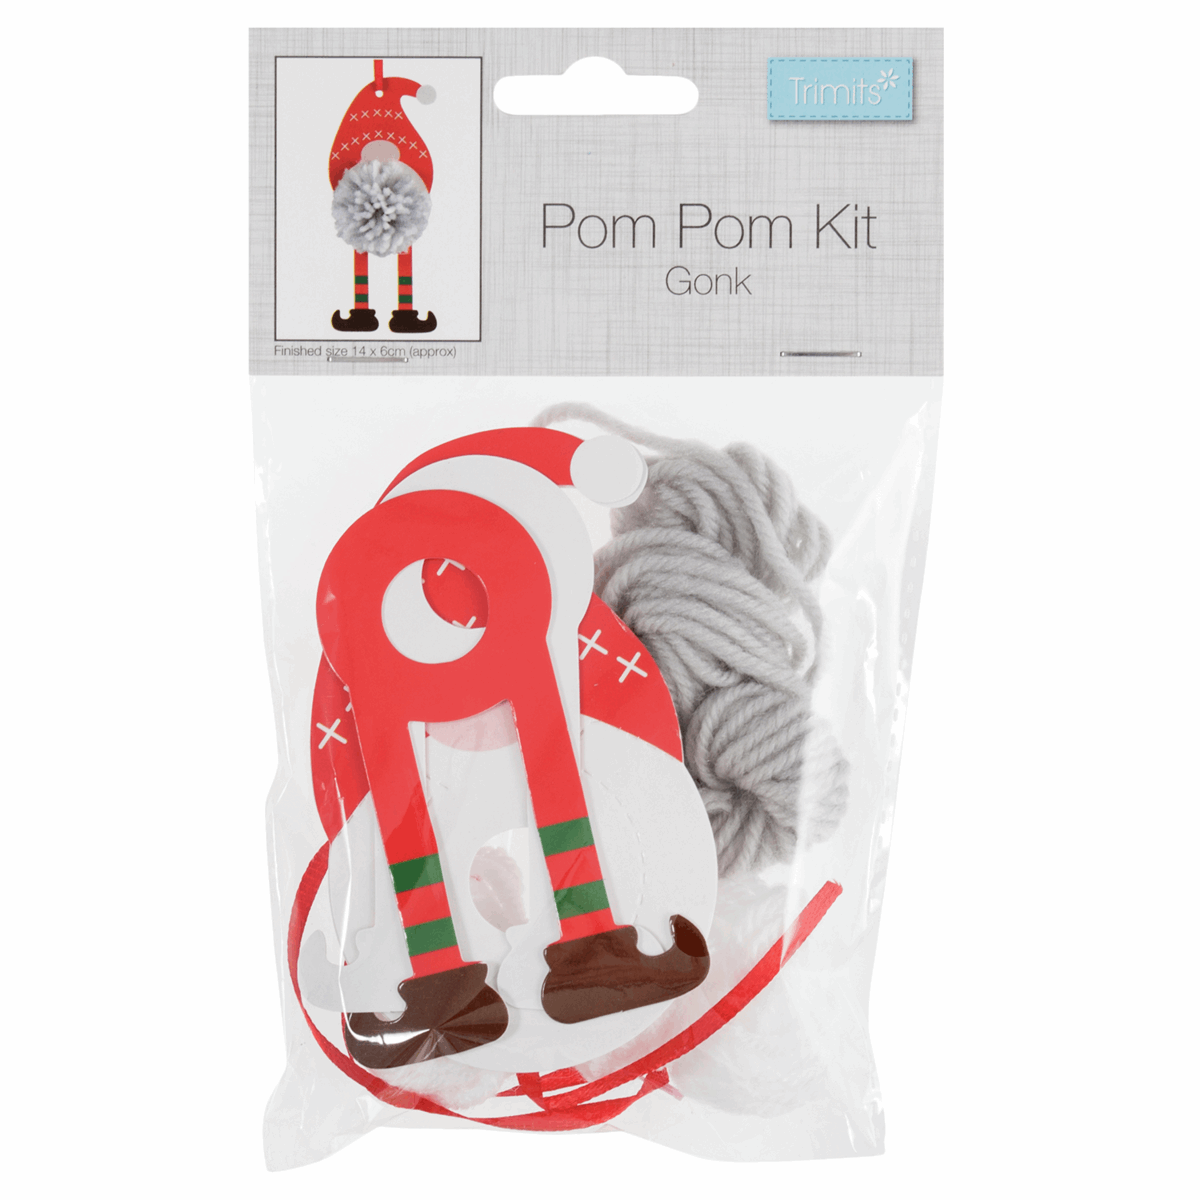 Picture of Pom Pom Decoration Kit: Christmas: Gonk: Pack of 1